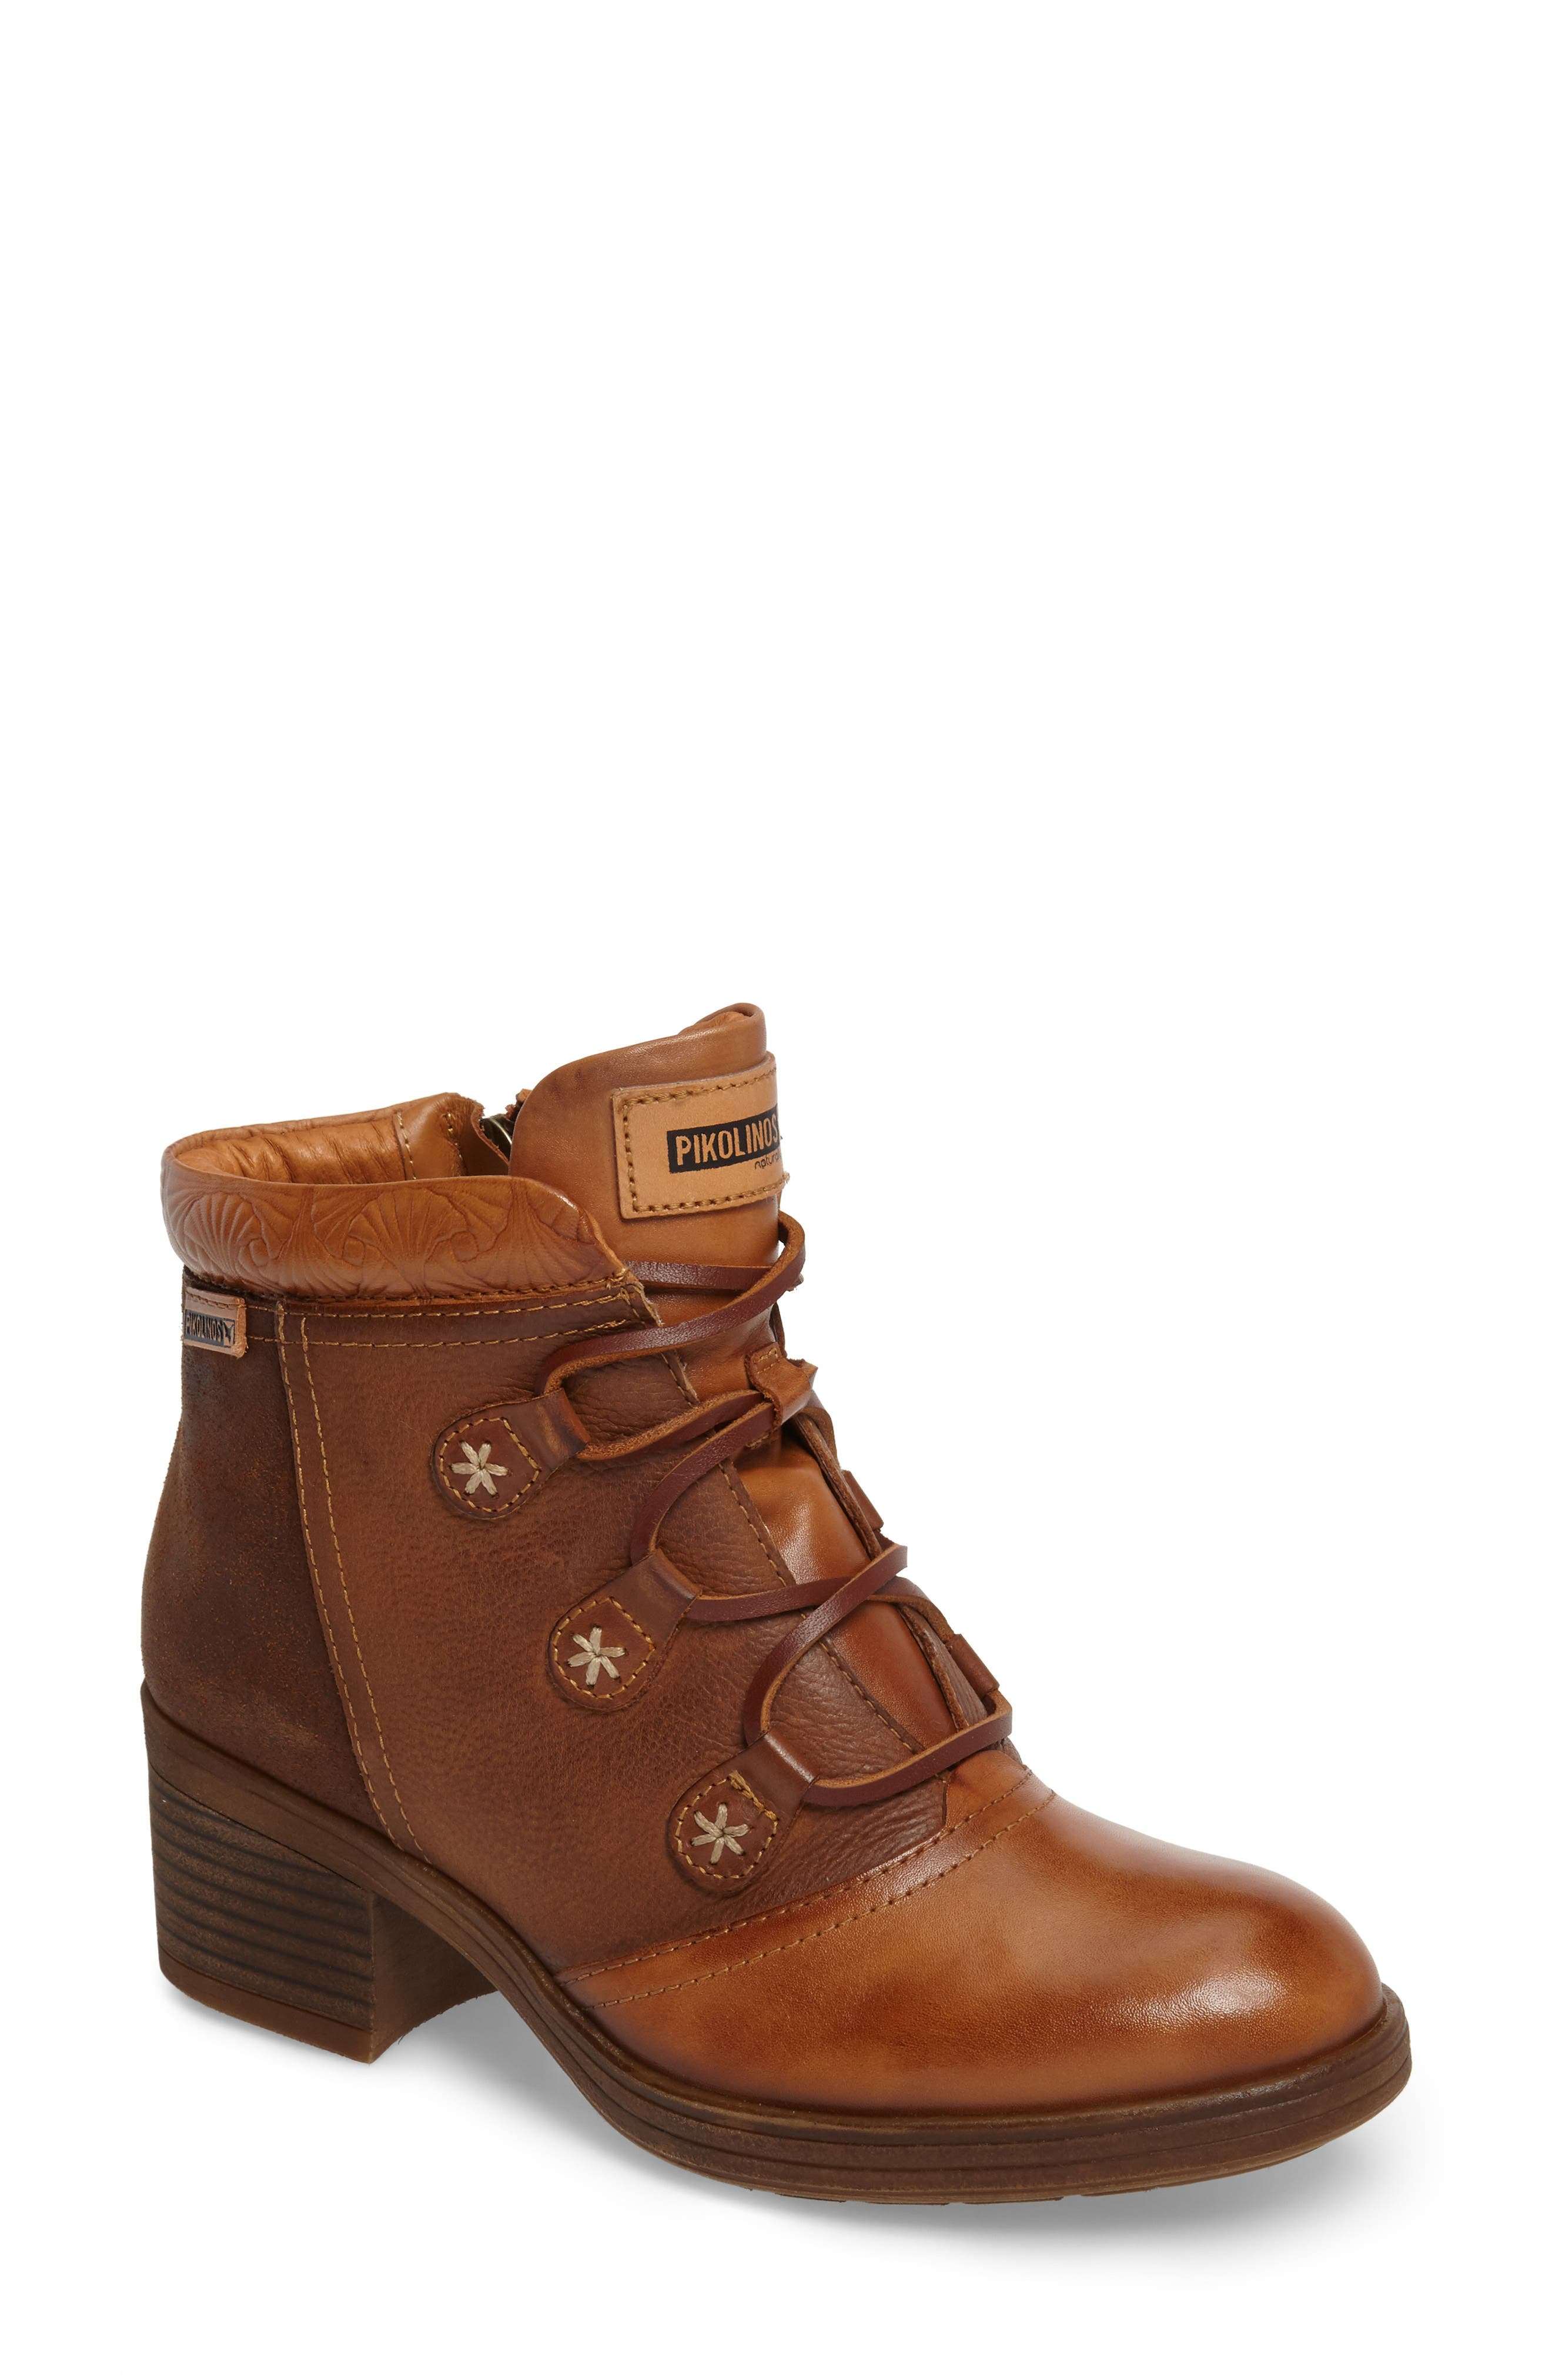 Lyon Lace-Up Boot,                             Main thumbnail 1, color,                             Brandy Leather